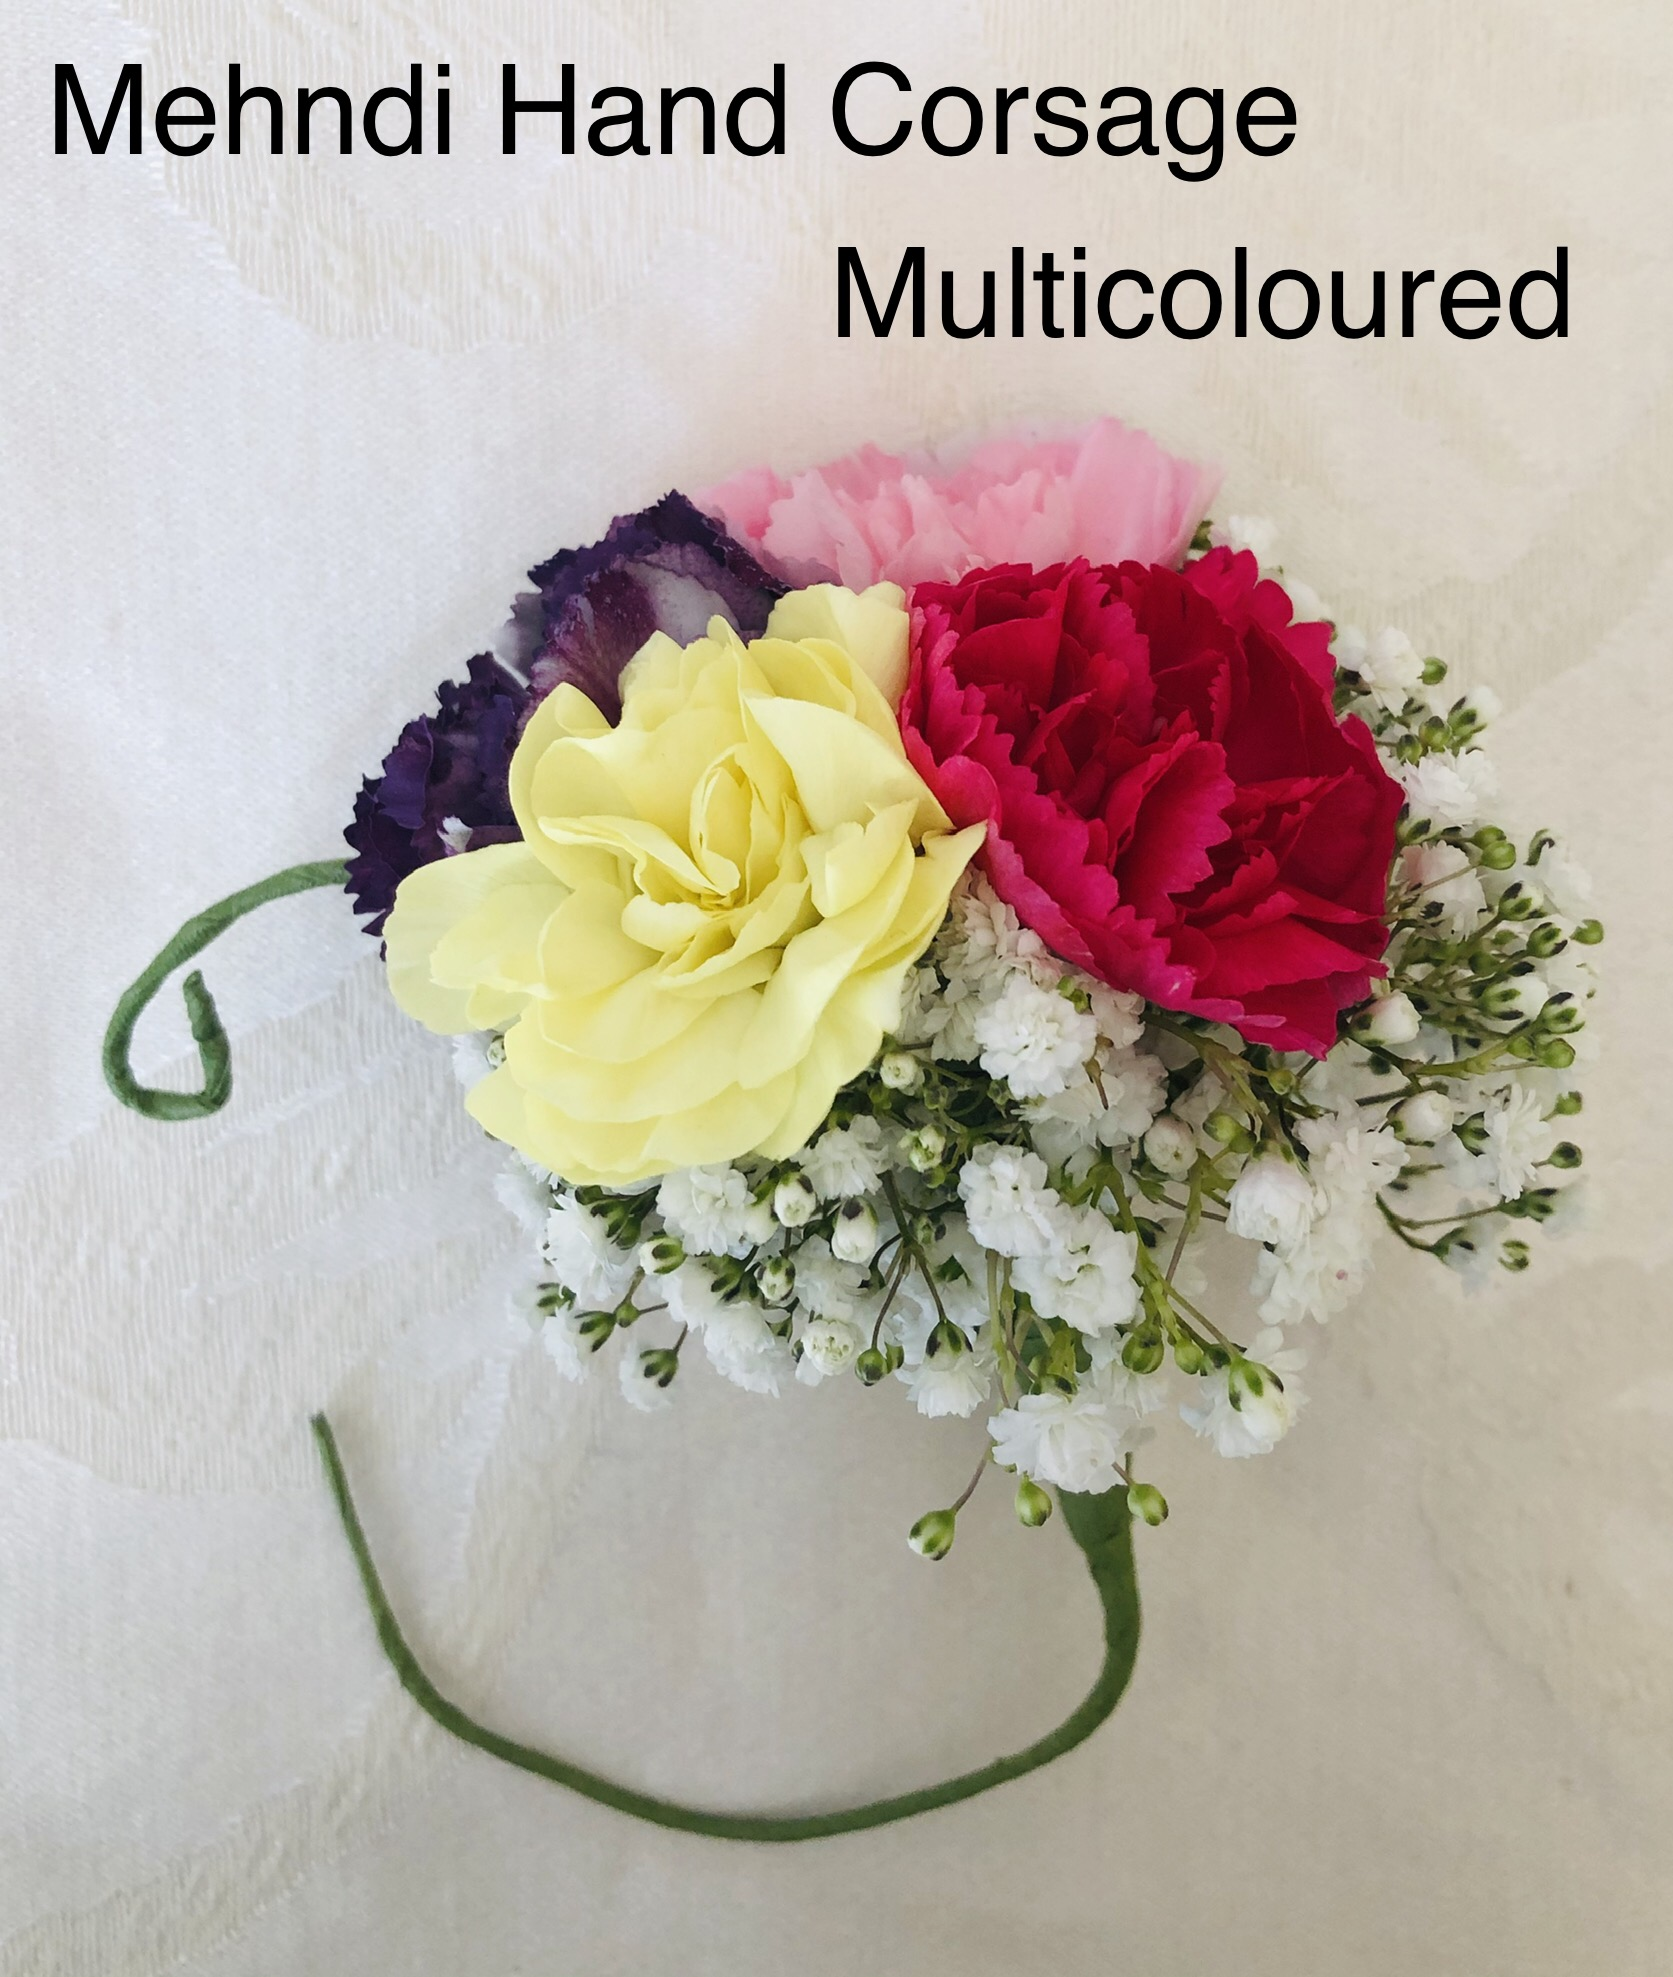 Multi coloured Hand Corsage